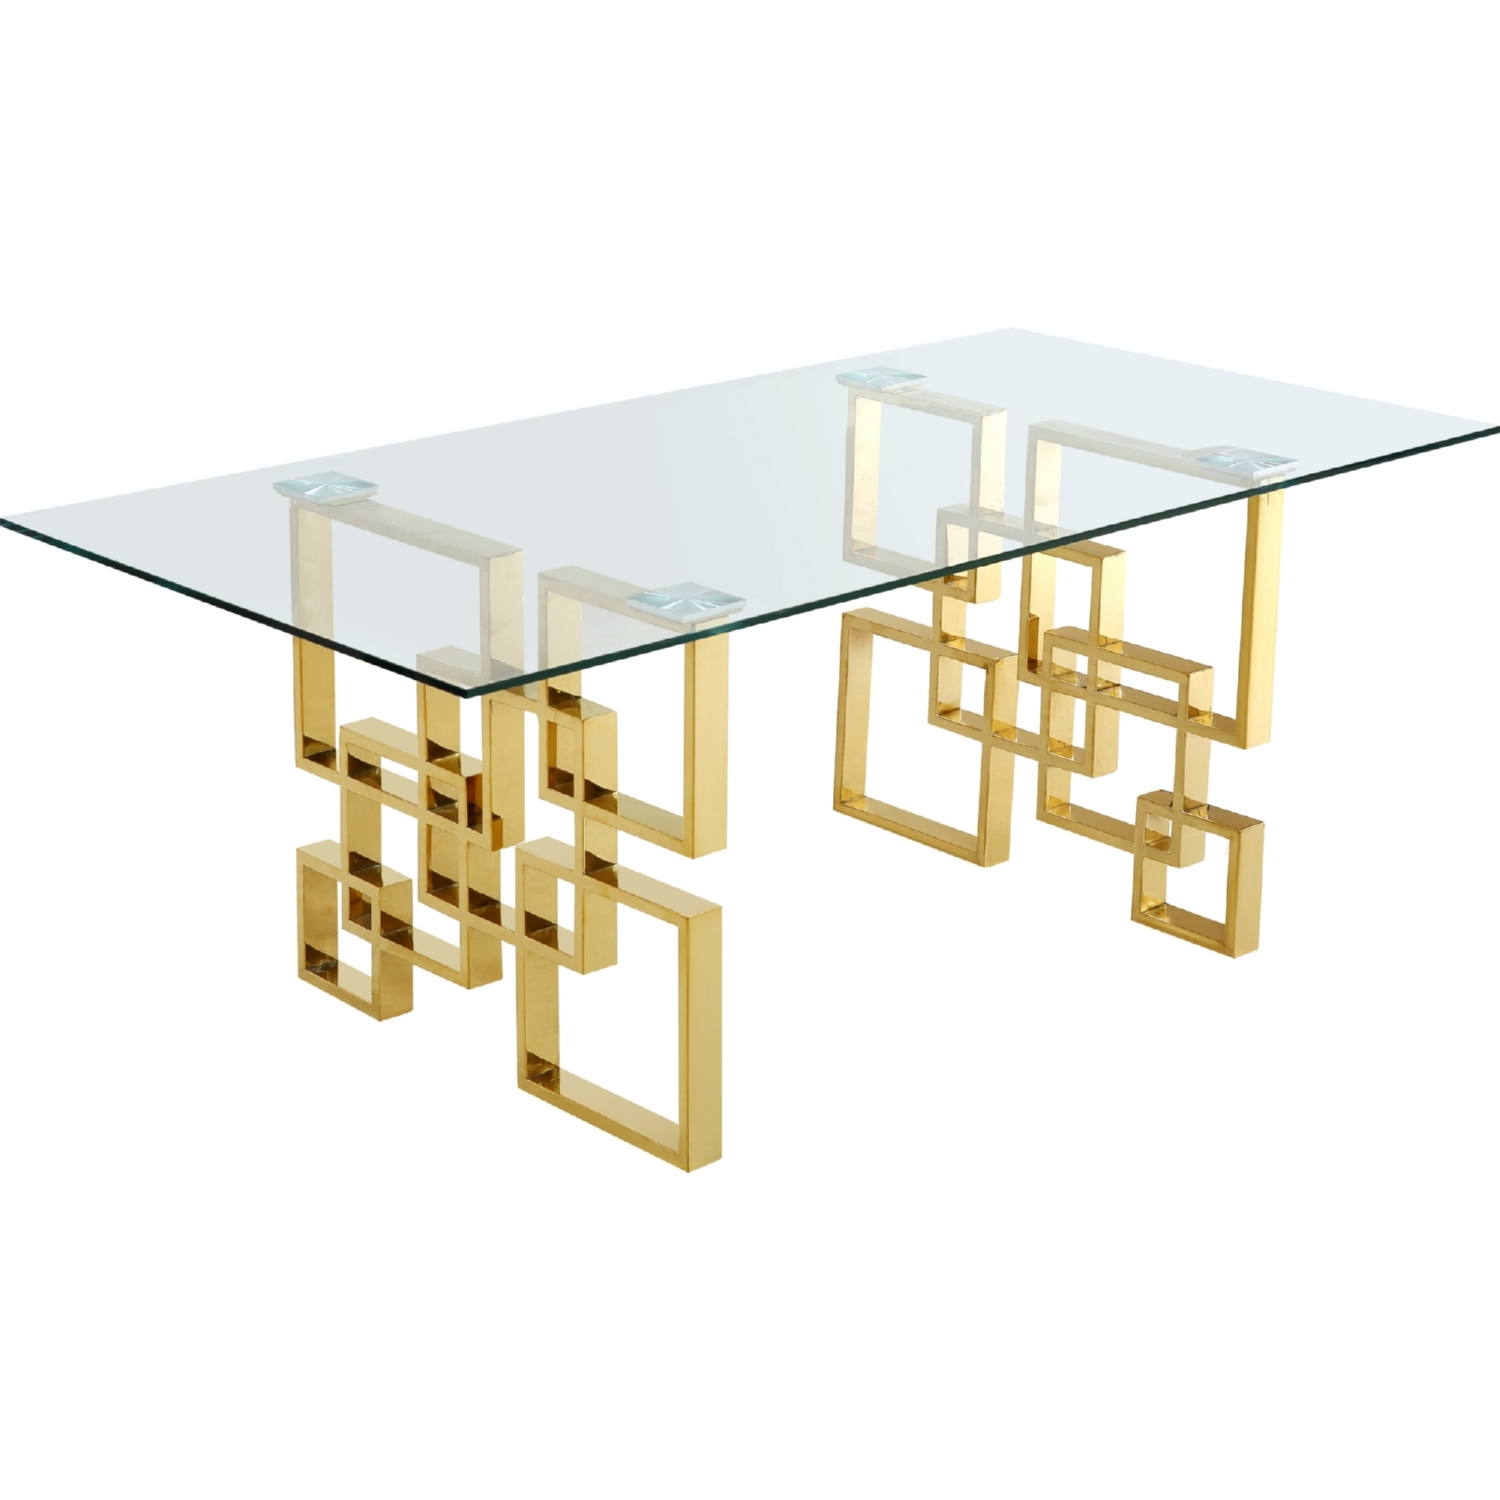 Meridian 714 T Pierre 78 Quot Gold Geometric Stainless Steel